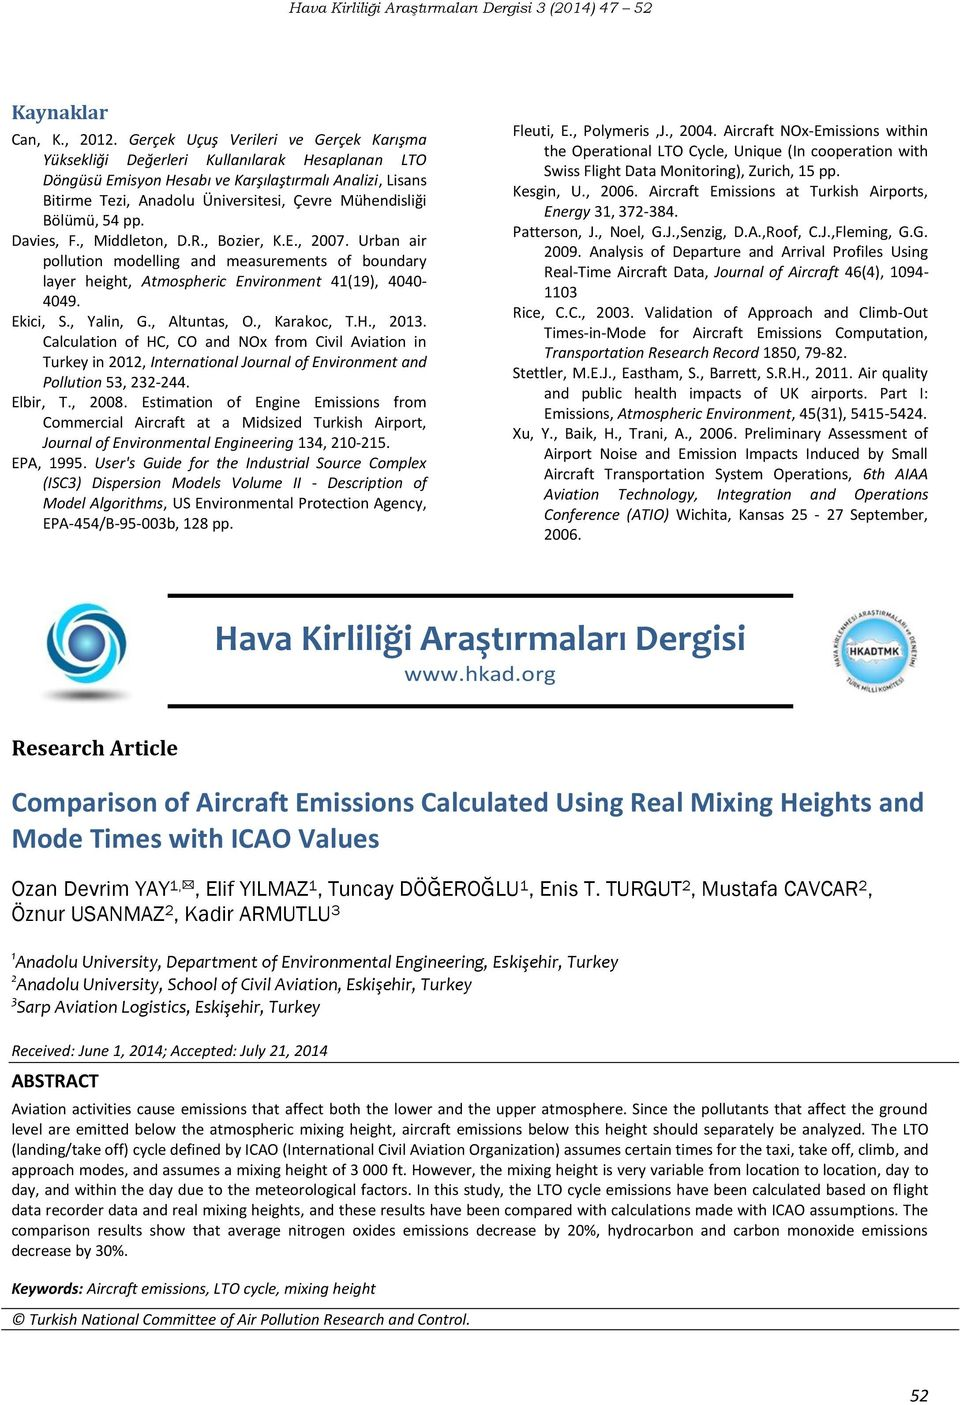 Mühendisliği Bölümü, 54 pp. Davies, F., Middleton, D.R., Bozier, K.E., 2007. Urban air pollution modelling and measurements of boundary layer height, Atmospheric Environment 41(19), 4040-4049.